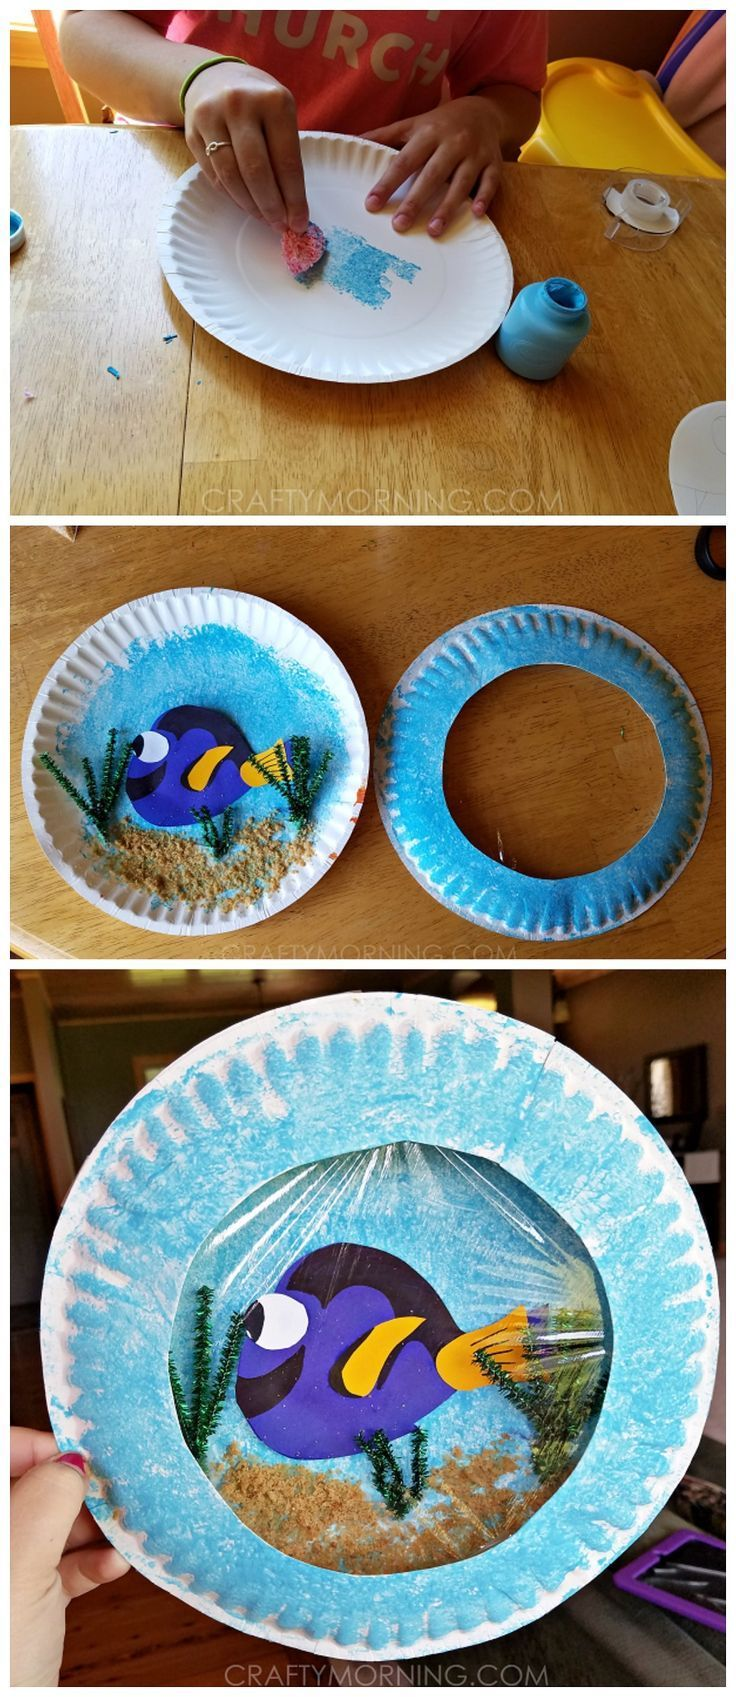 Finding Dory Paper Plate Craft - Crafty Morning #disneycrafts